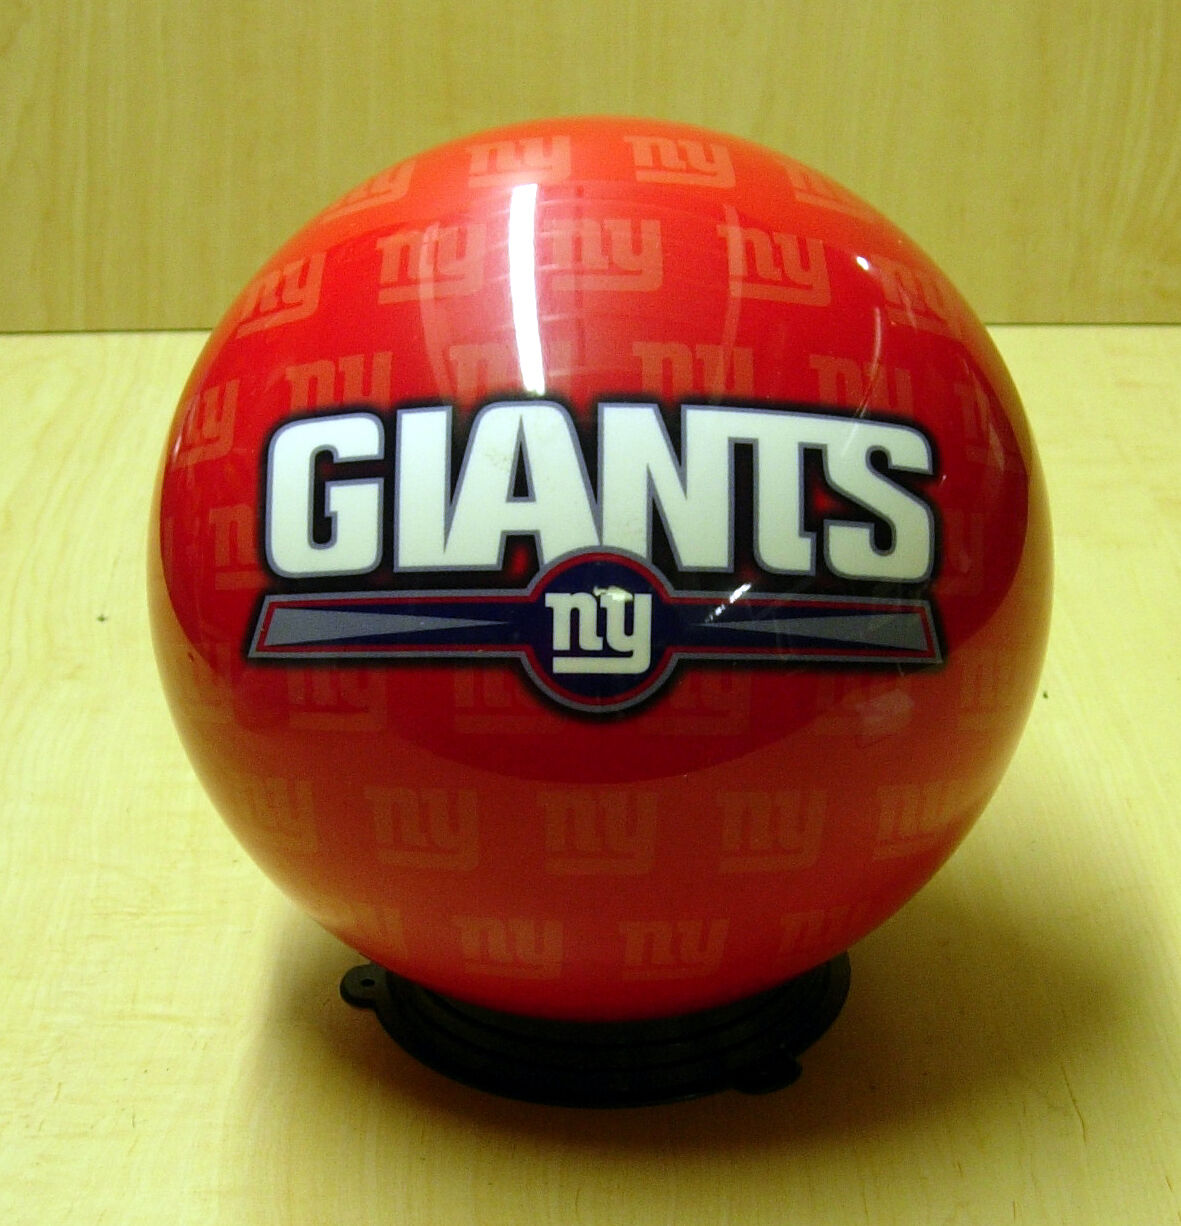 = 14TW 2.4 Retired 2010 Style OTB VIZ-A-BALL NFL New York GIANTS Bowling Ball